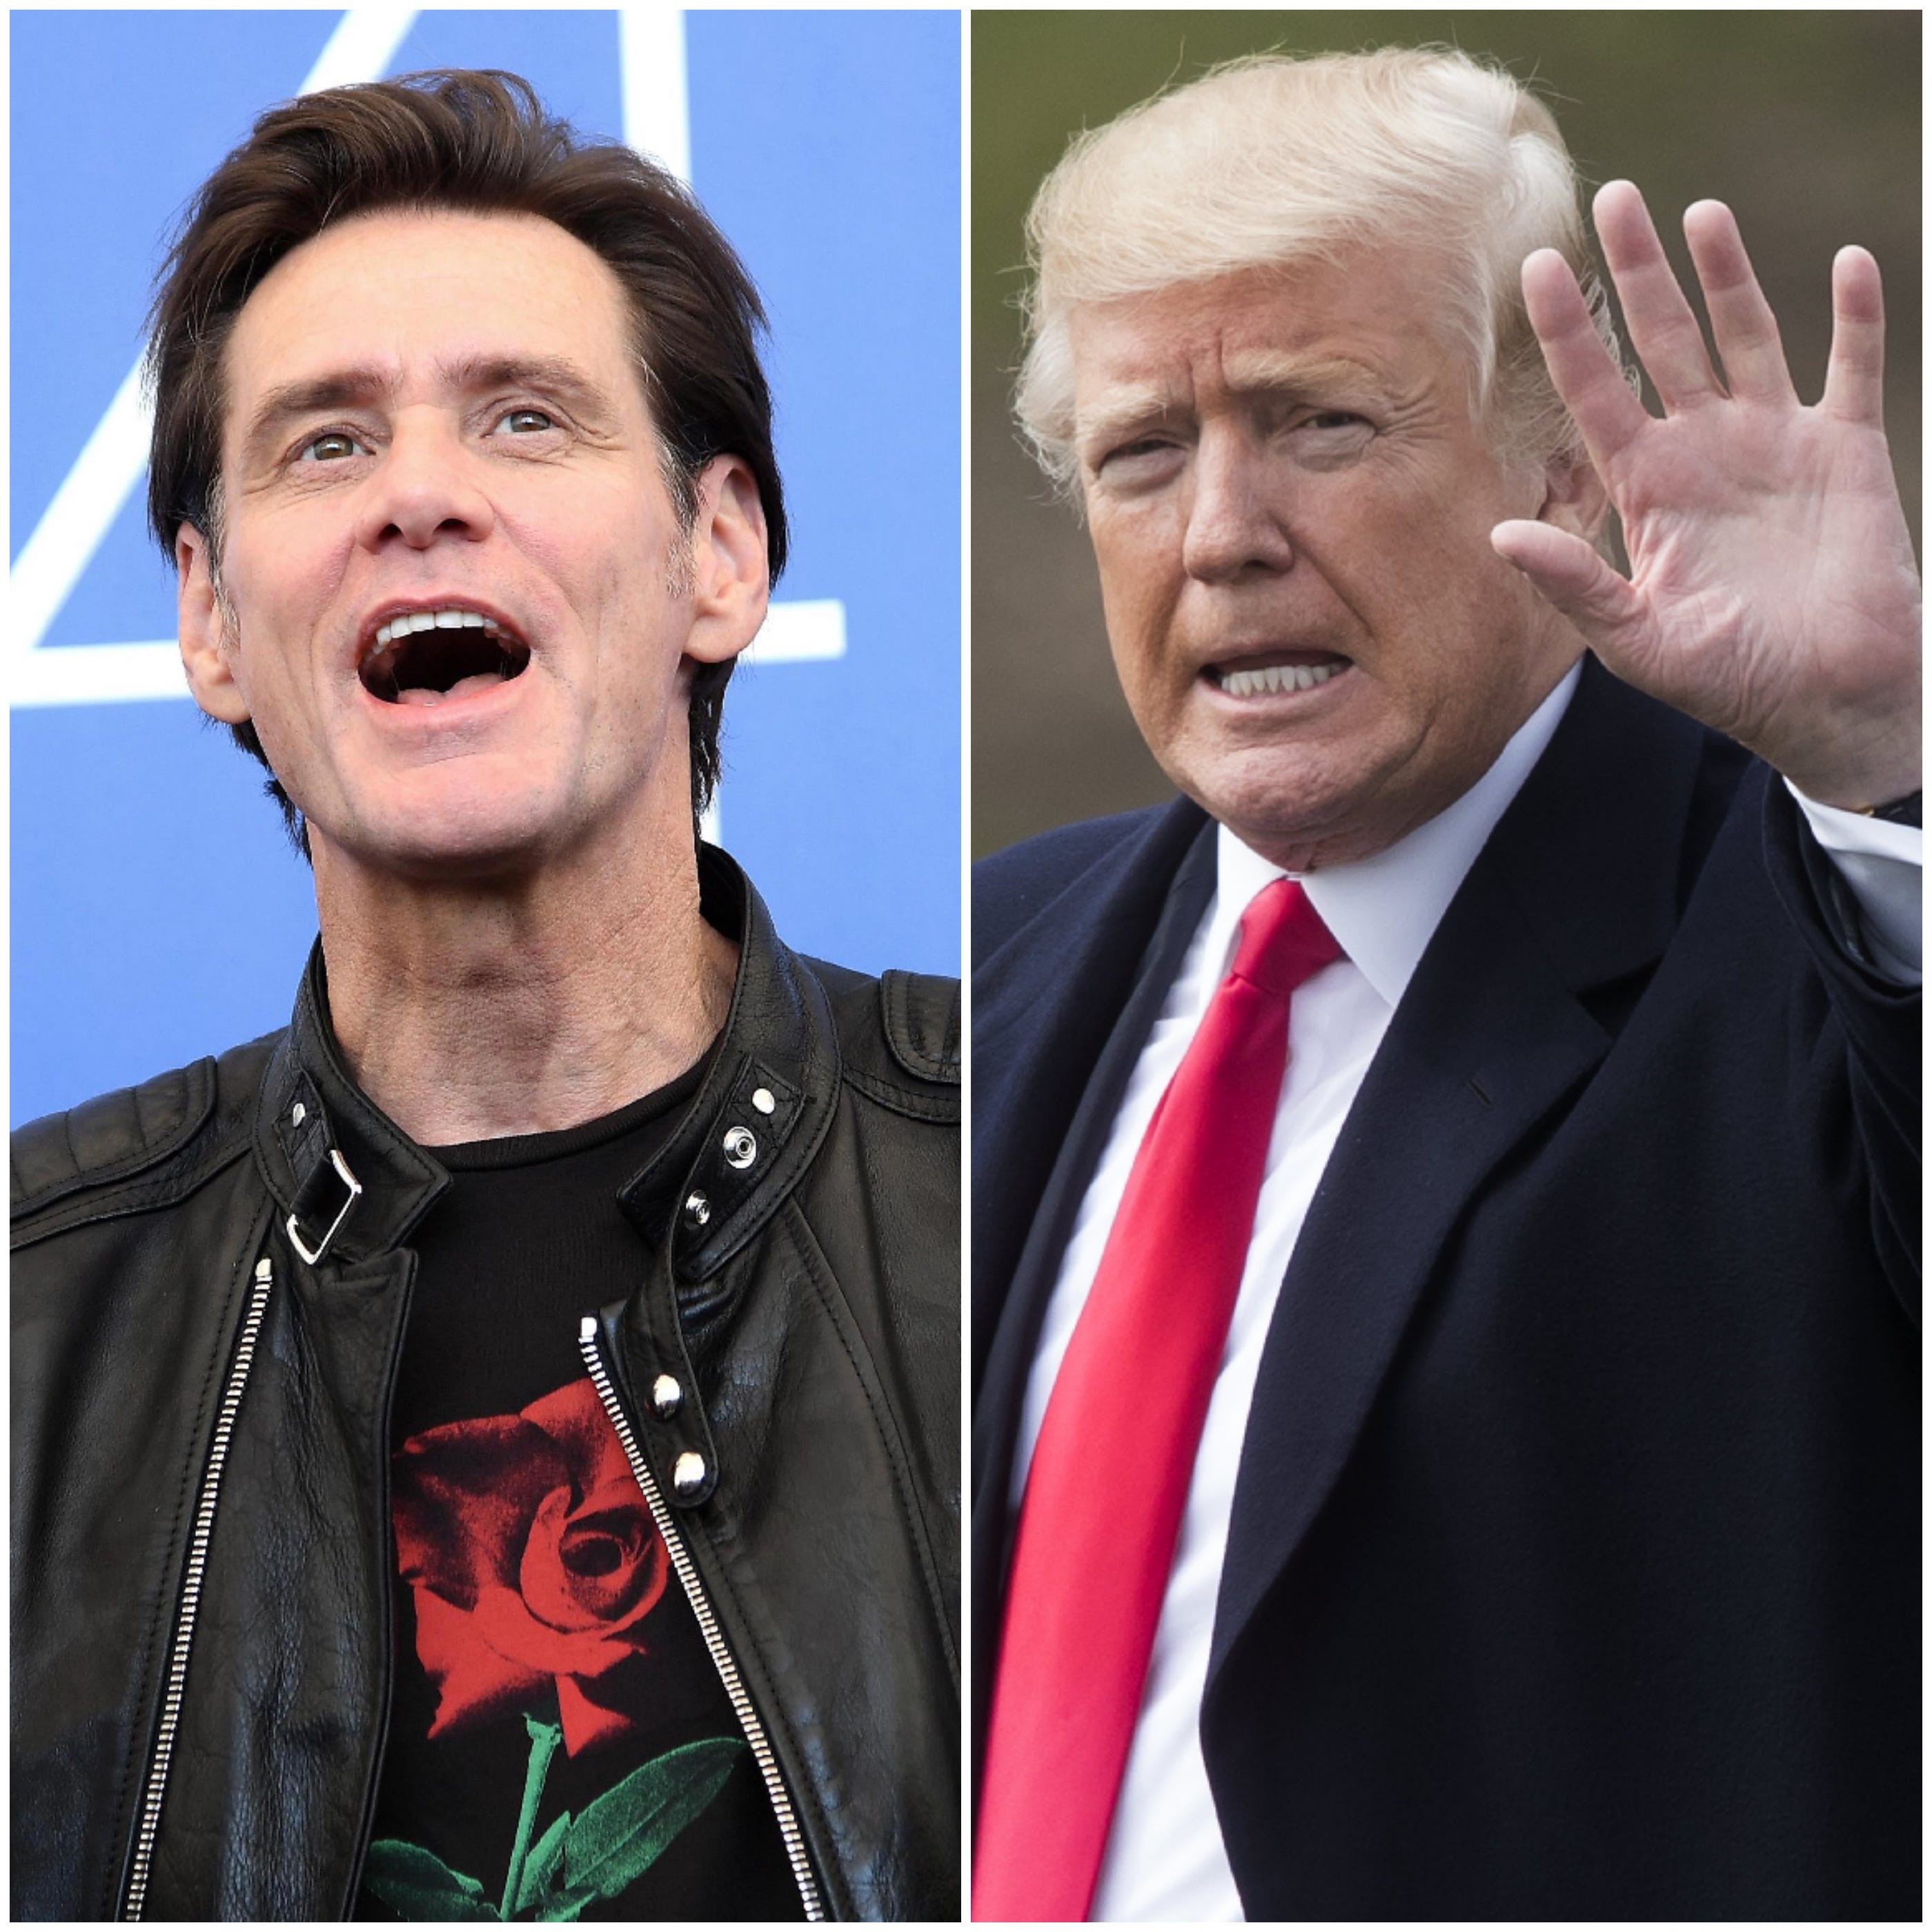 Photo Russian double Jim Carrey has created a furor in the web 08/09/2016 81